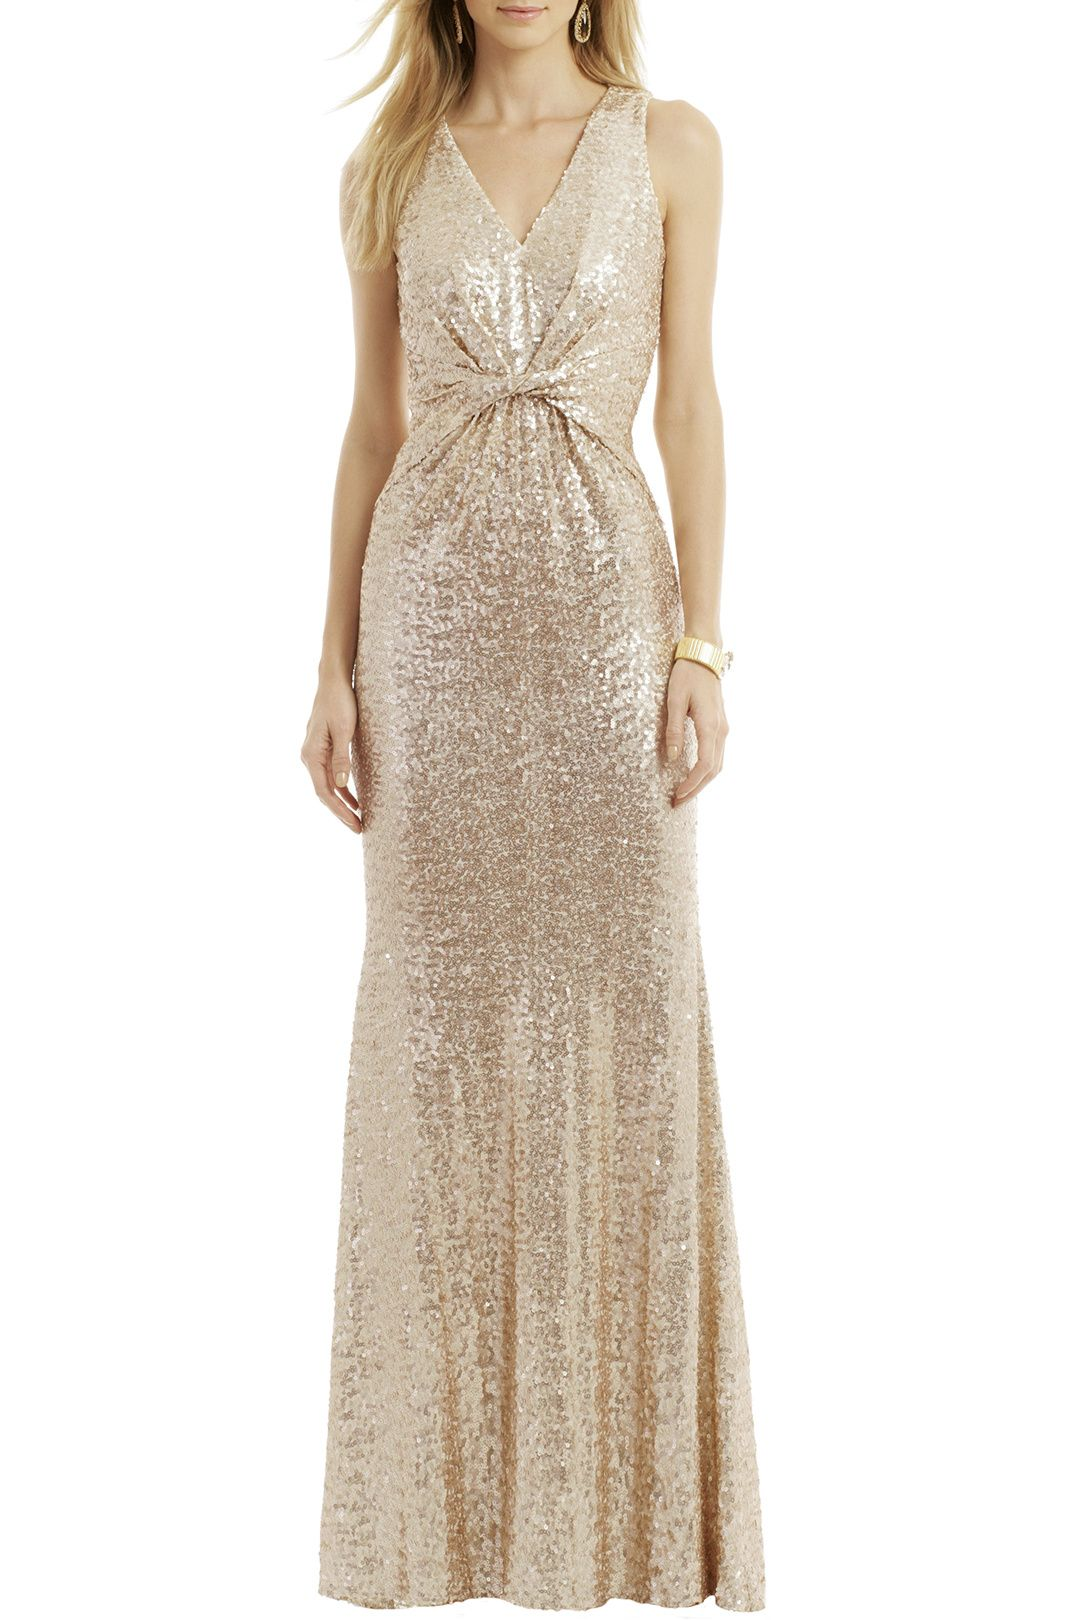 Where can i rent a wedding dress  Twist It Out Gown by Badgley Mischka for   Rent The Runway